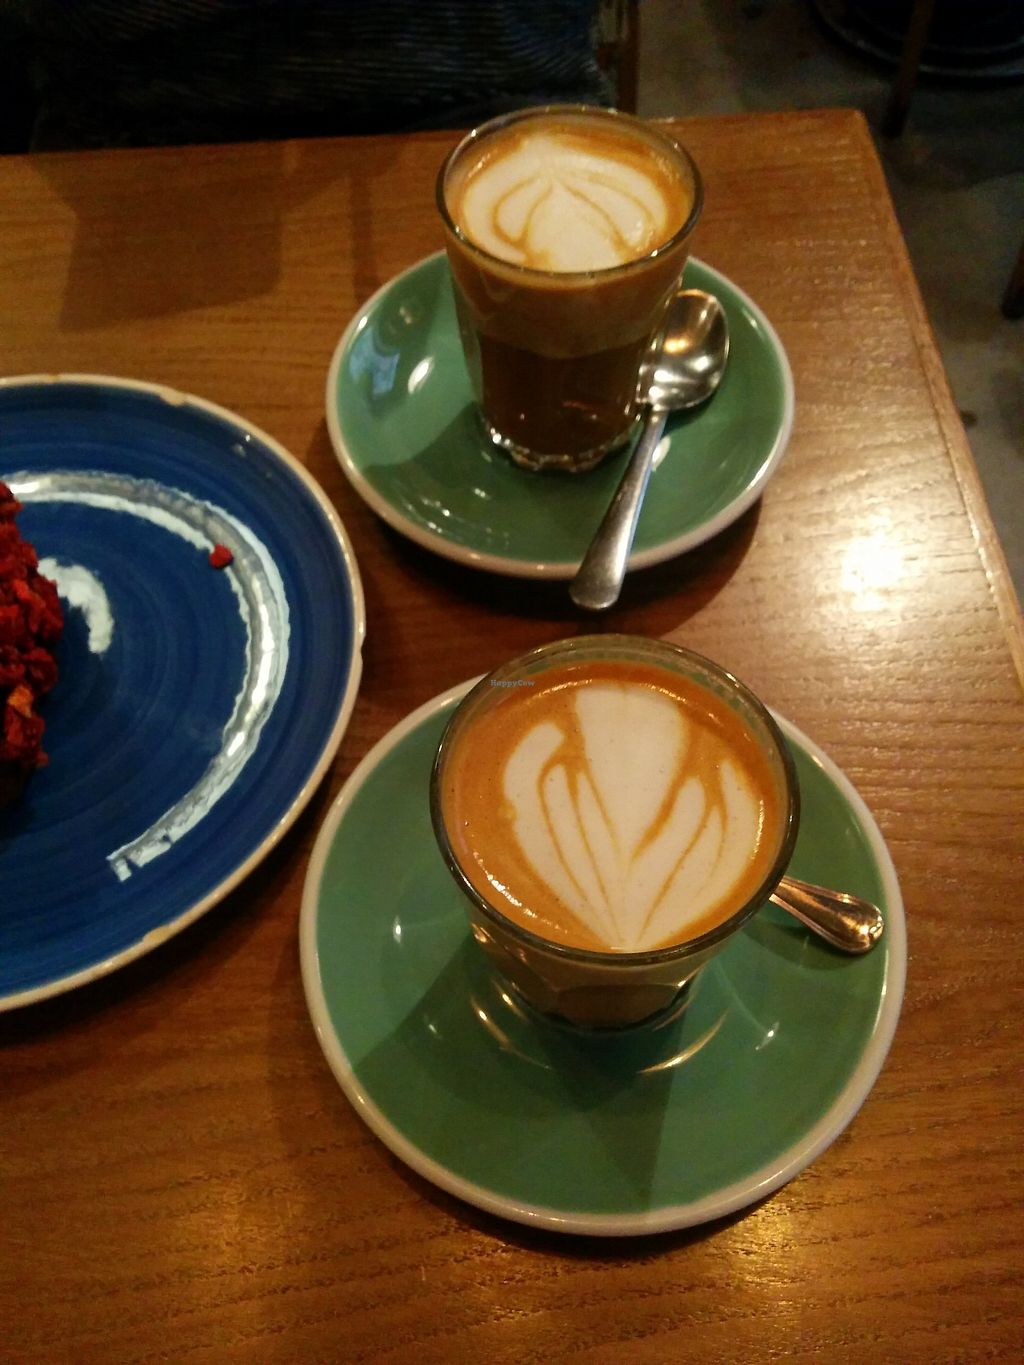 """Photo of Pum Pum Cafe  by <a href=""""/members/profile/FlokiTheCat"""">FlokiTheCat</a> <br/>Soja lattes <br/> October 6, 2017  - <a href='/contact/abuse/image/73911/312371'>Report</a>"""